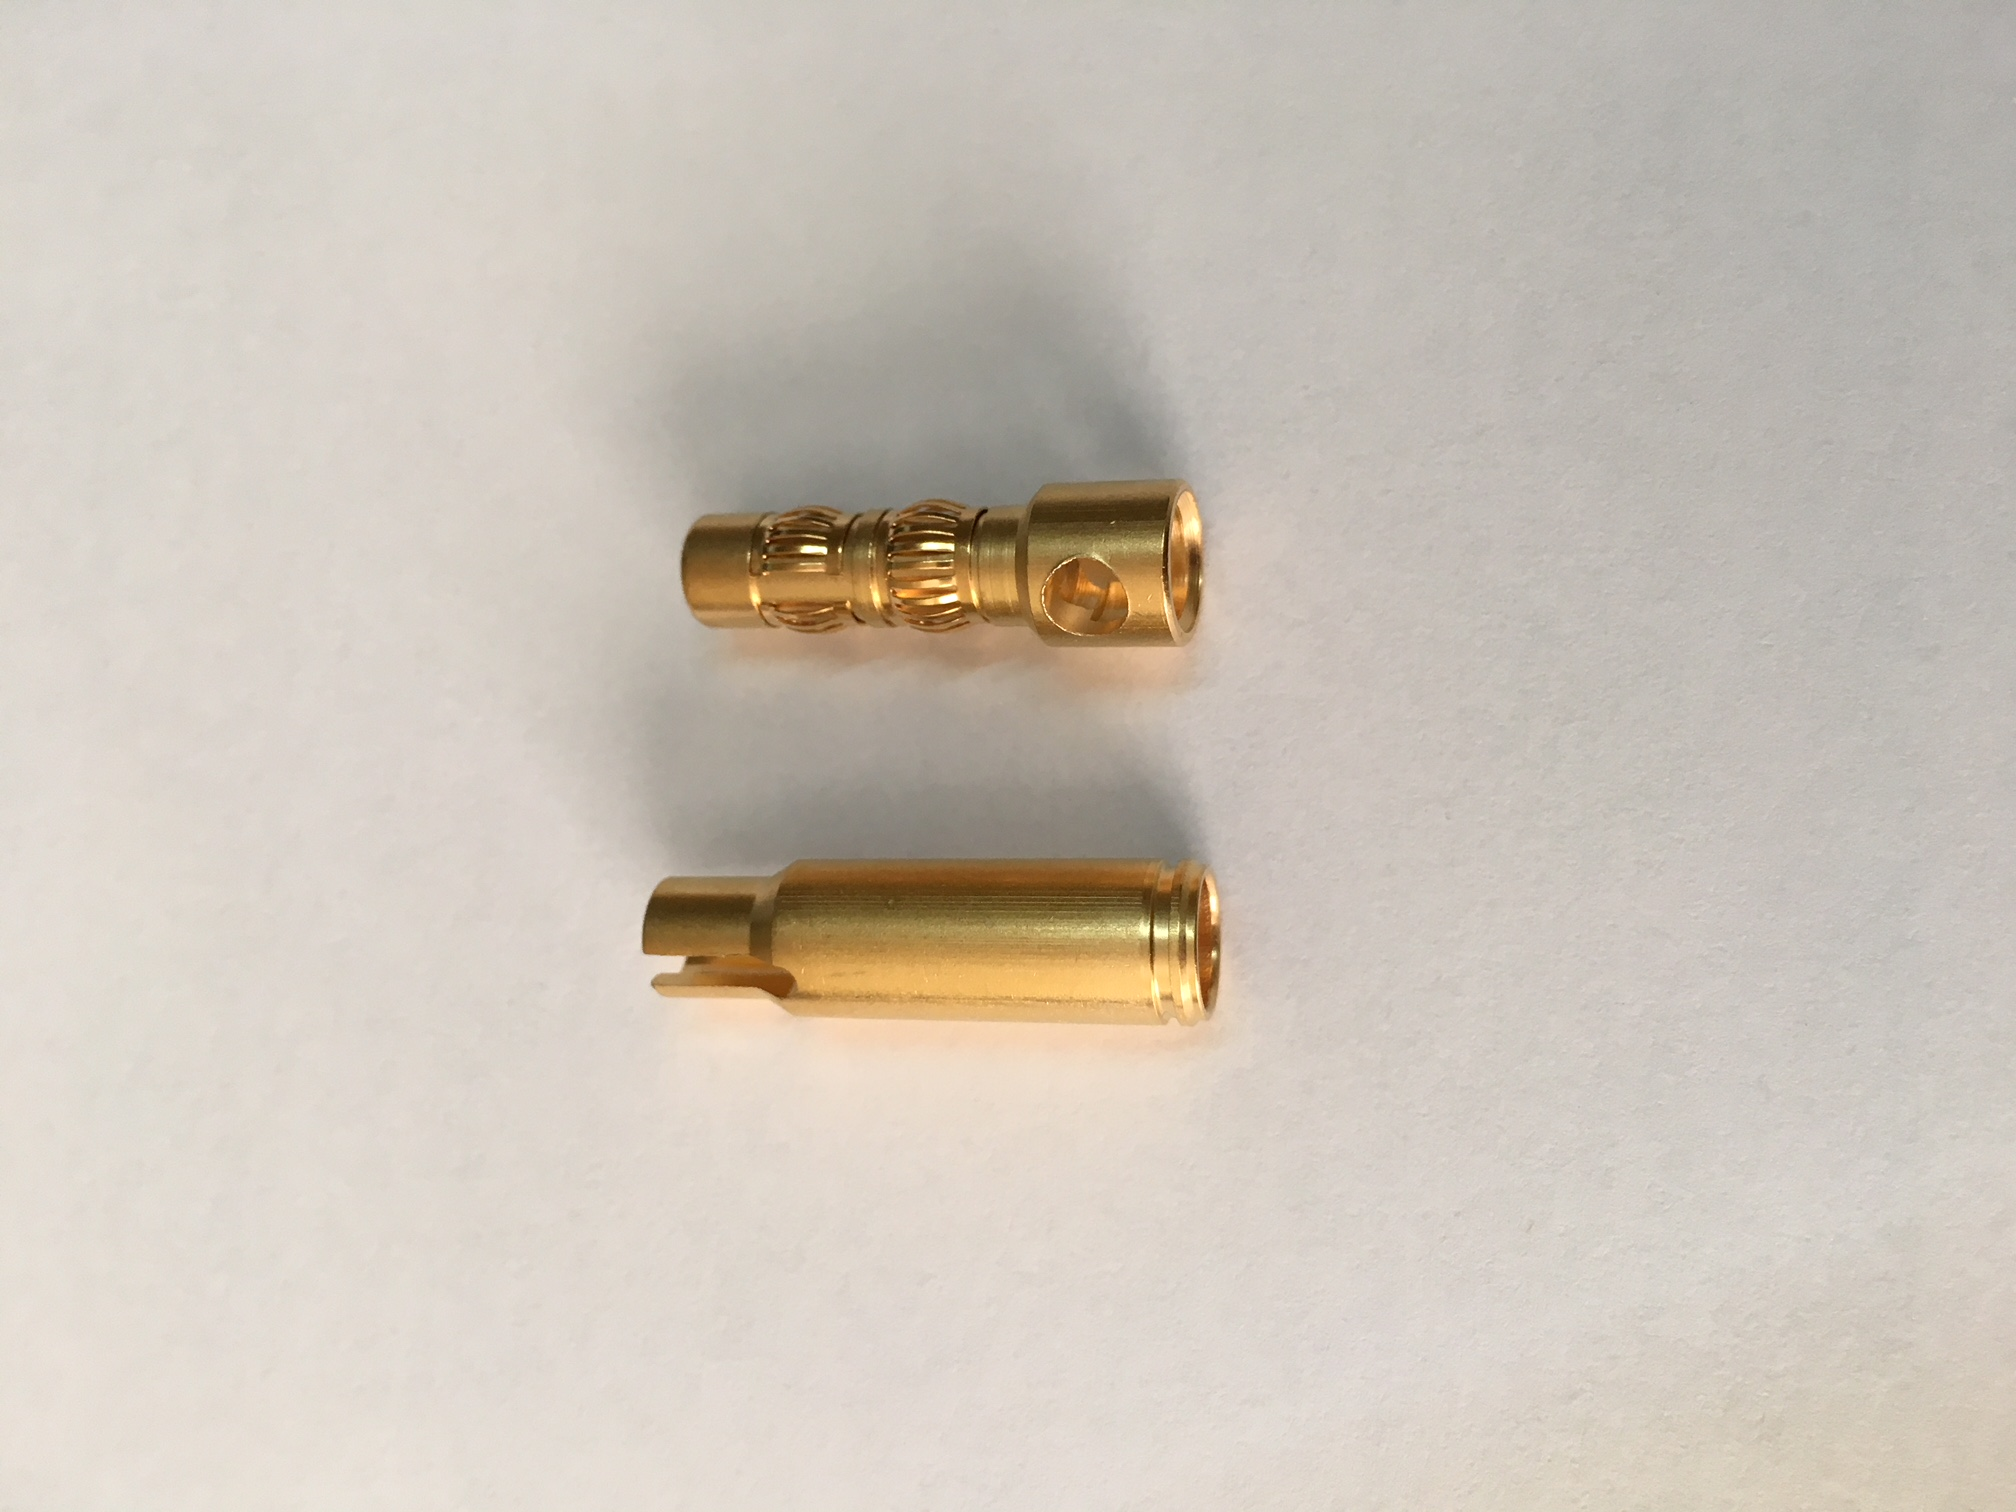 Connectors banna oro 8,0 mm (M/F)